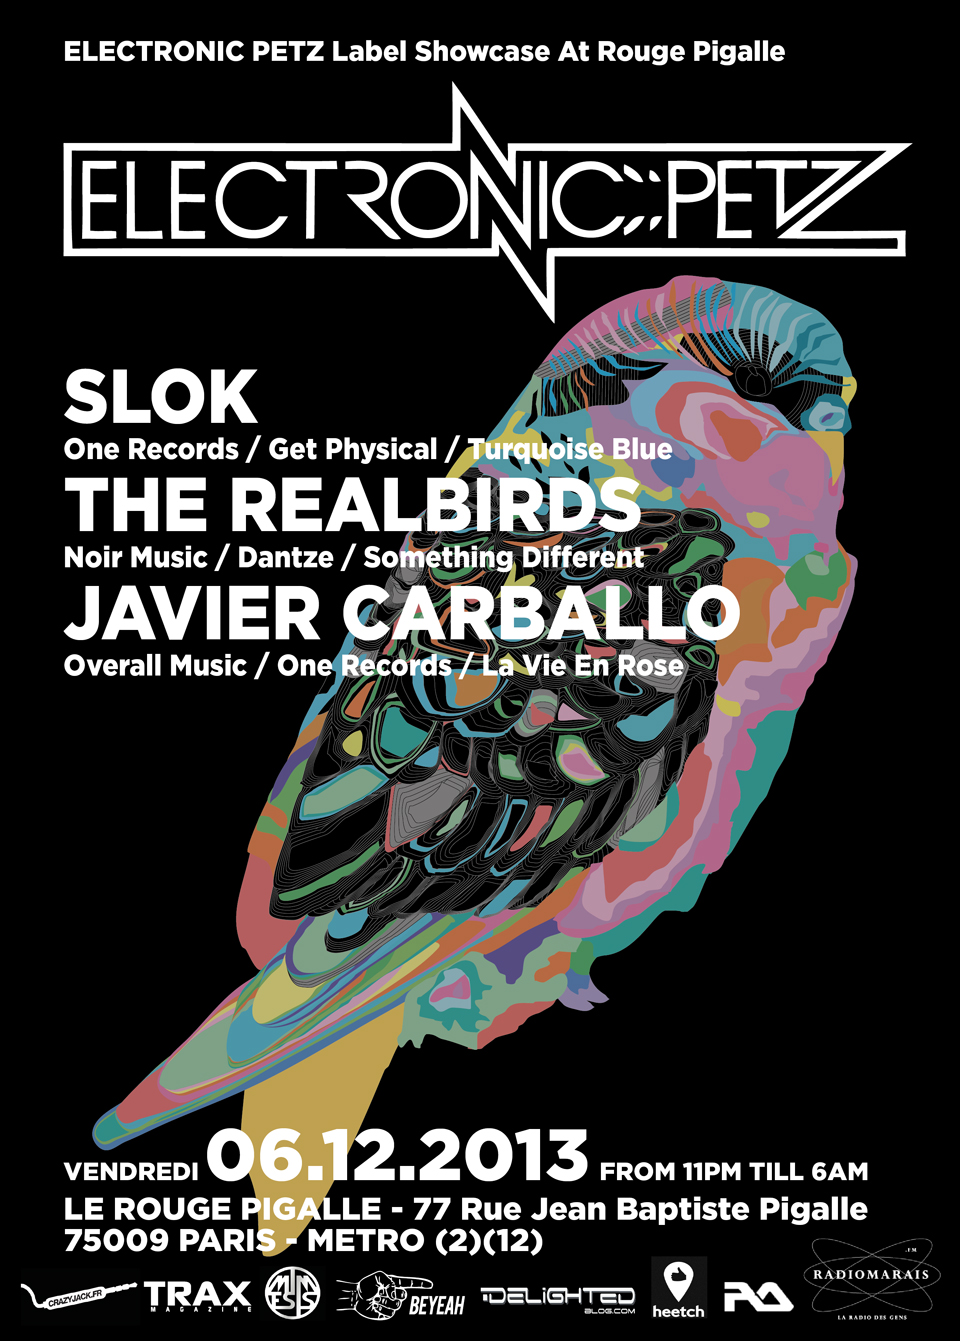 ELECTRONIC PETZ Label Showcase At Rouge Pigalle W/ SLOK, JAVIER CARBALLO, THE REALBIRDS